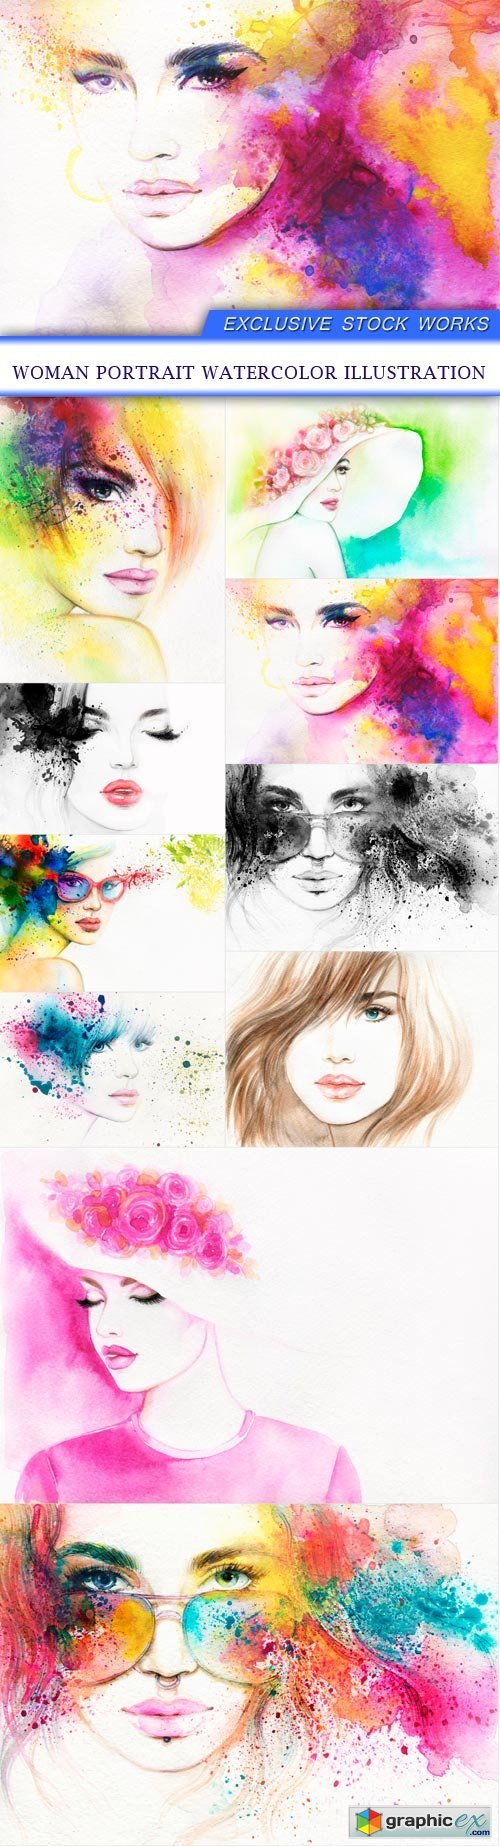 woman portrait watercolor illustration 10x JPEG